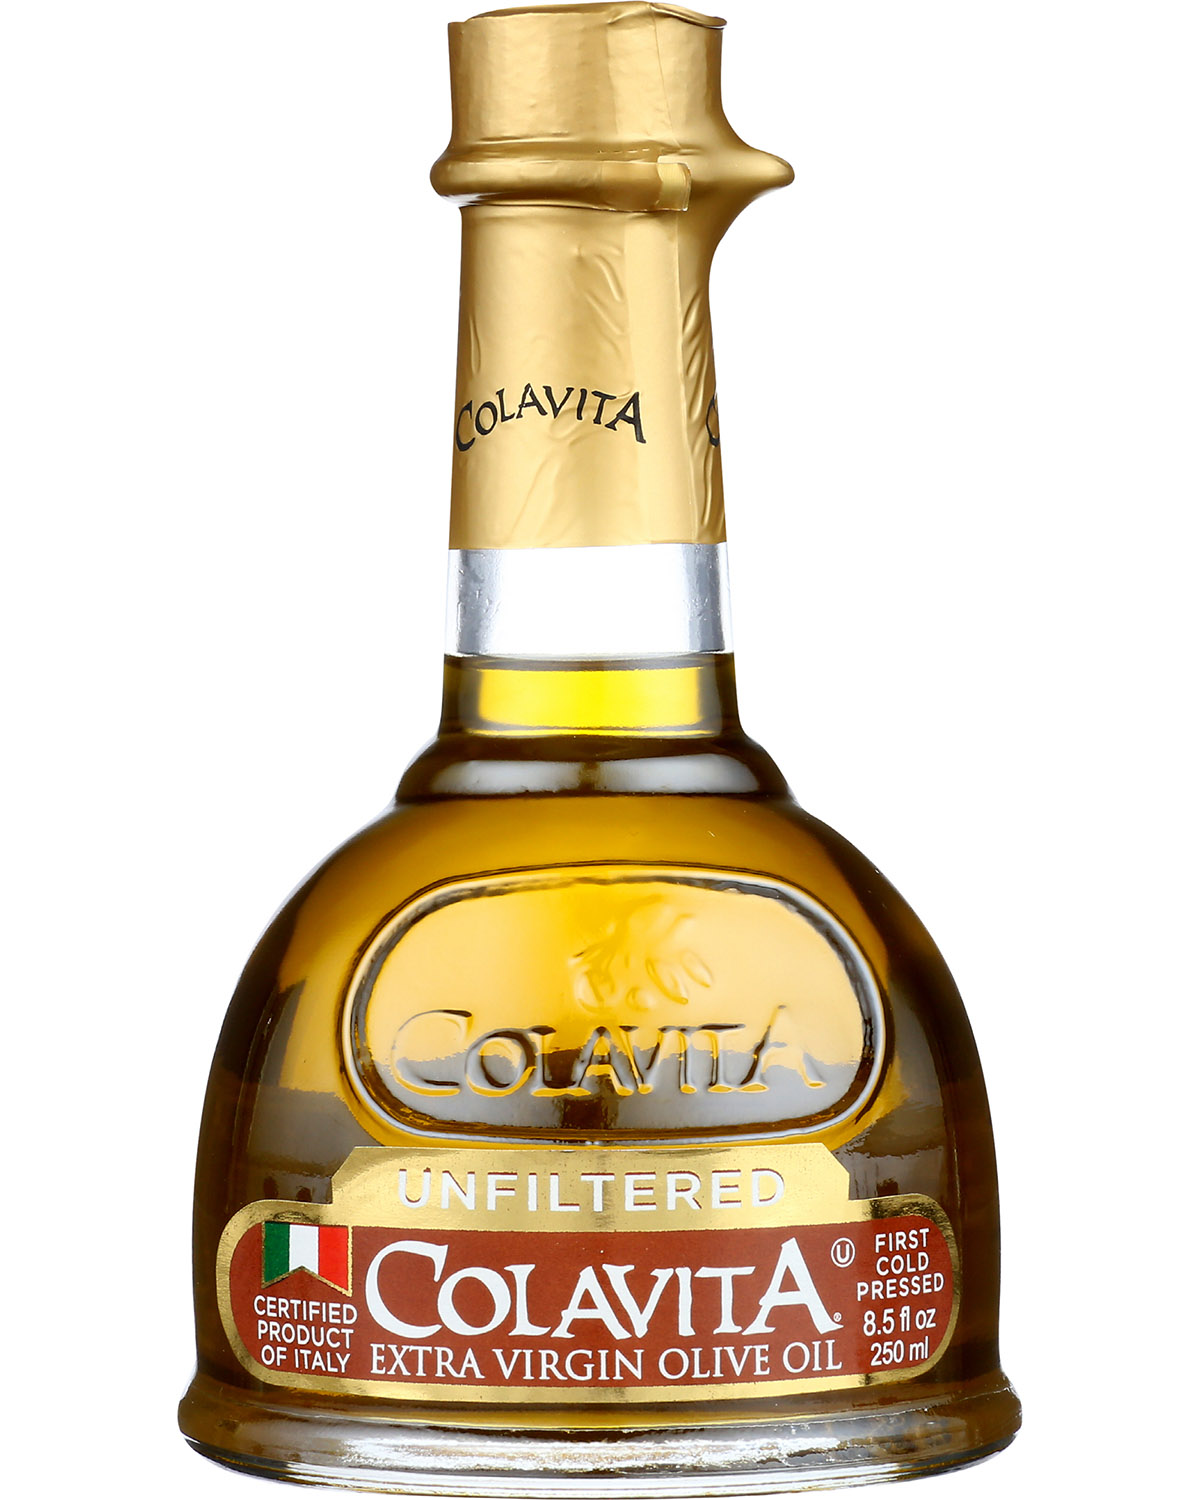 Colavita Unfiltered Extra Virgin Olive Oil